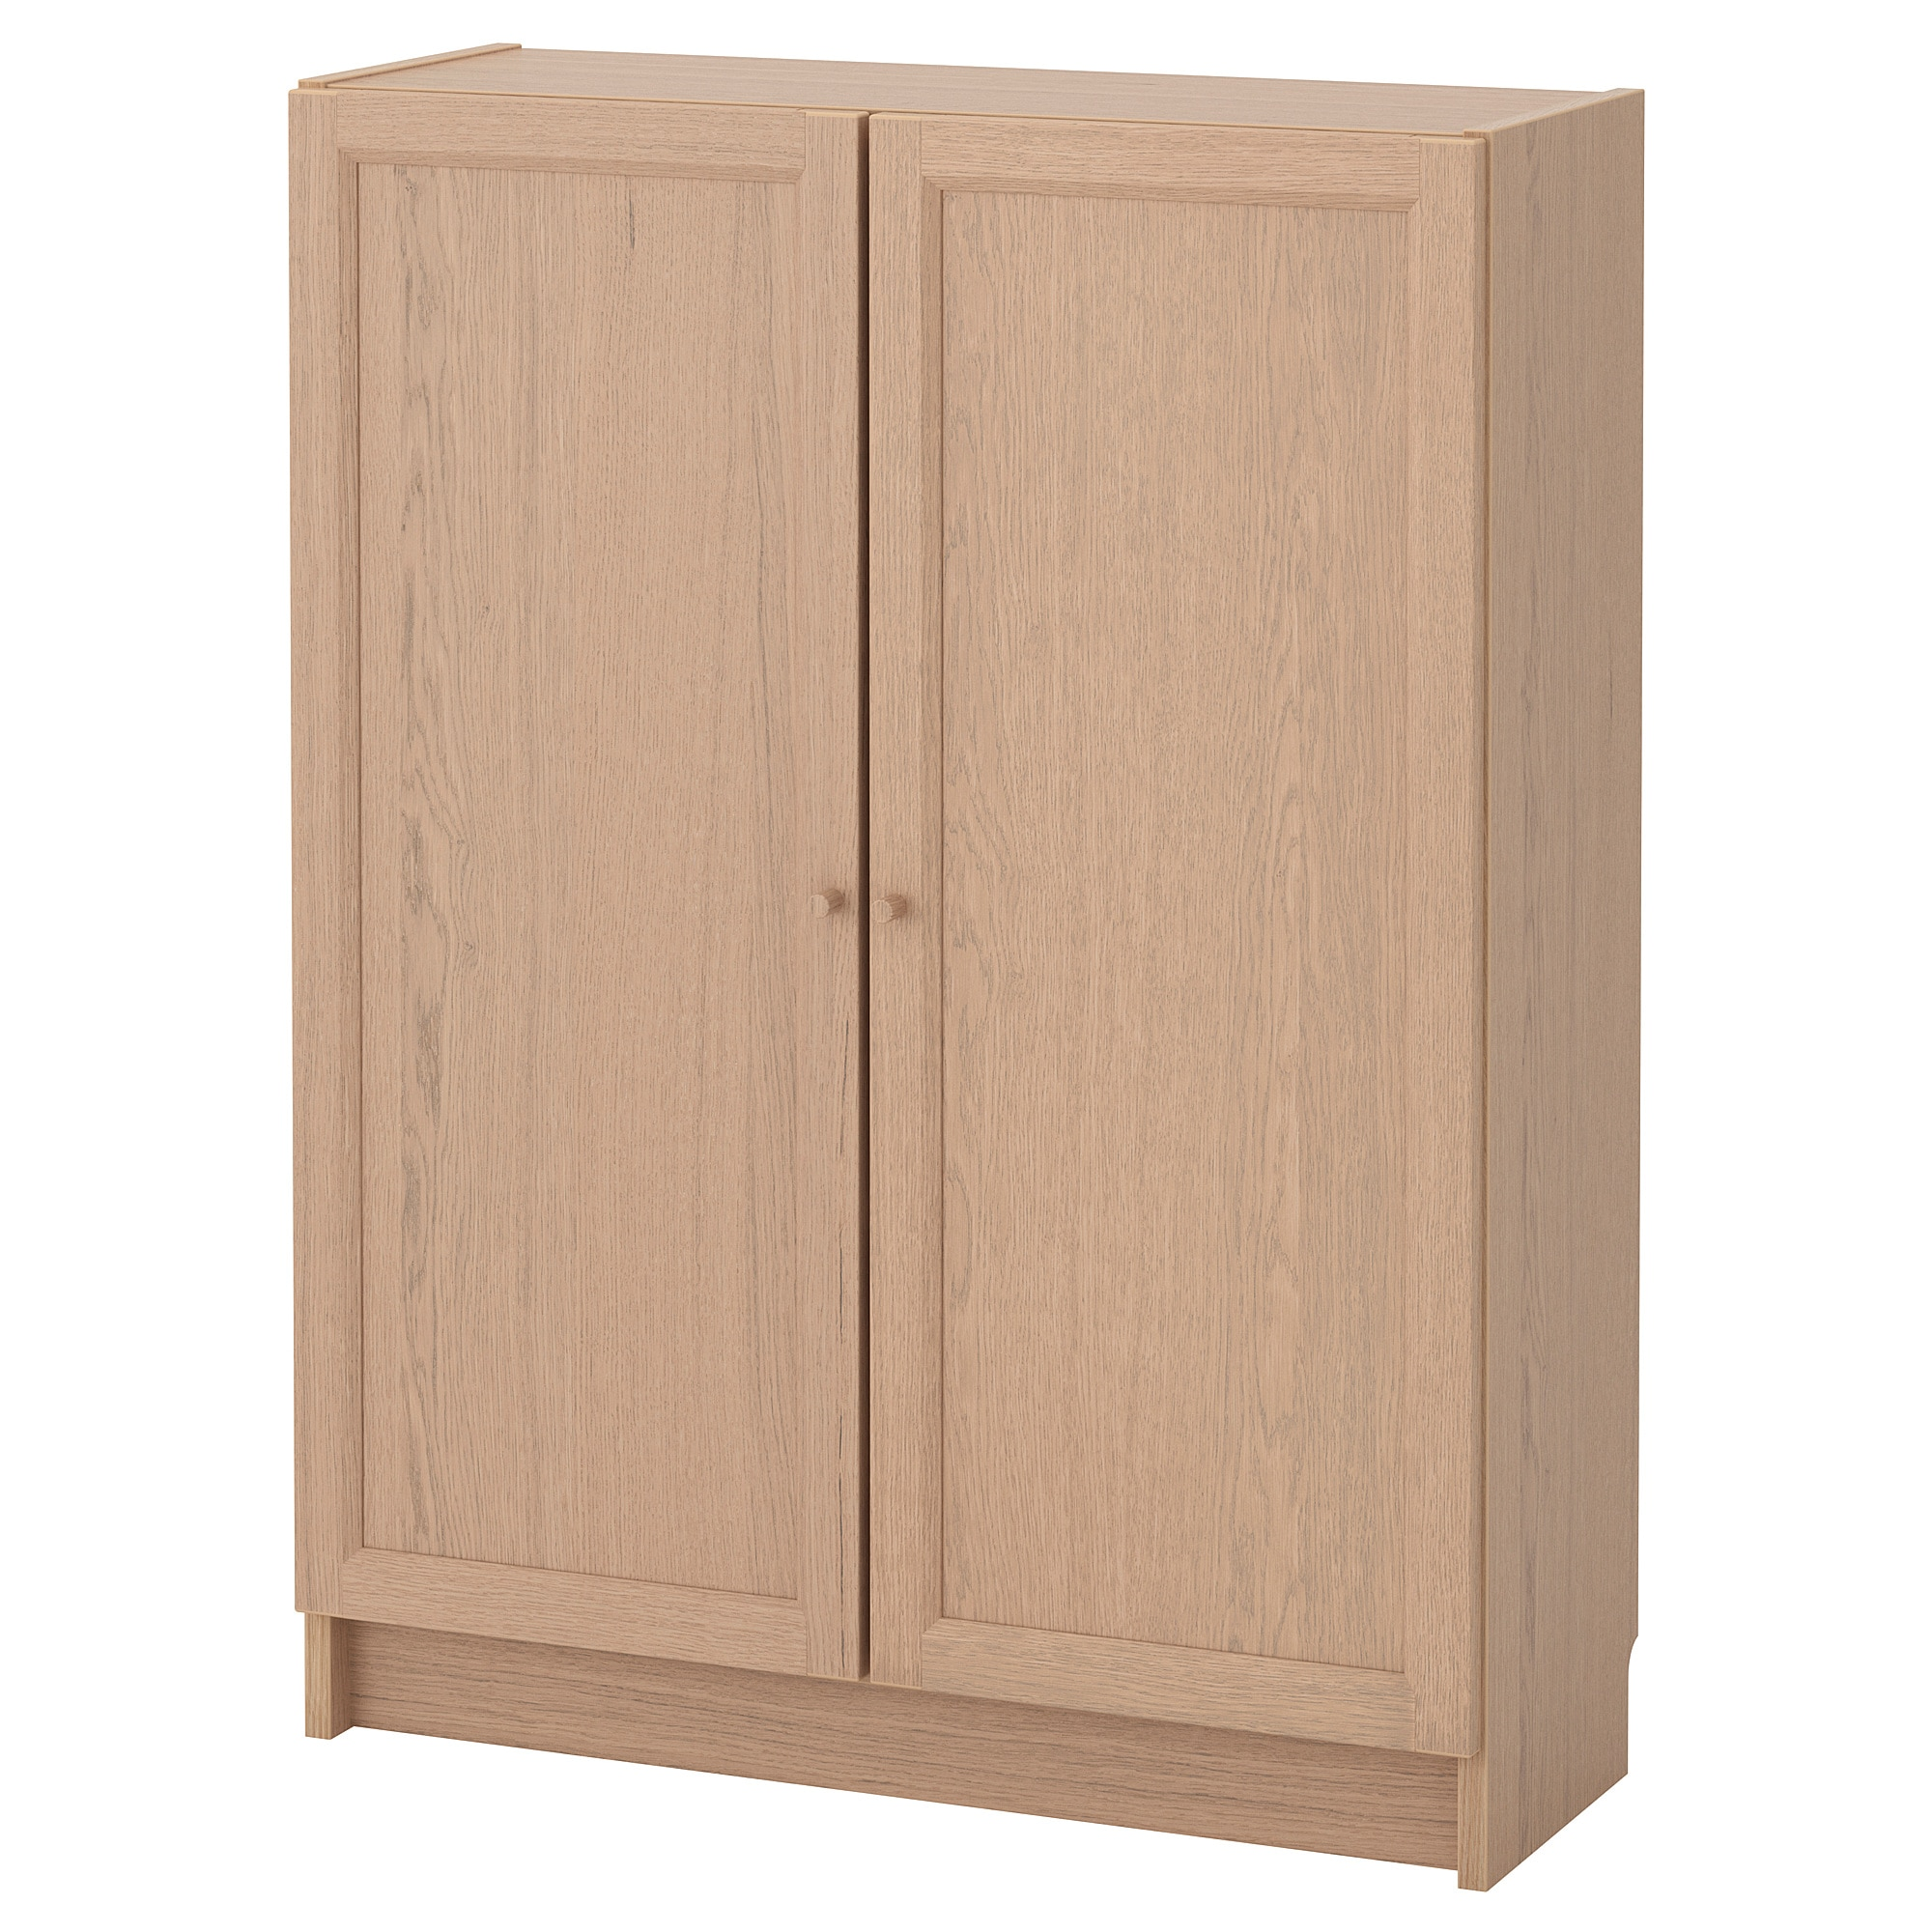 Billy Oxberg Dining Cabinets Ikea Billy Oxberg Bucherregal Furnier